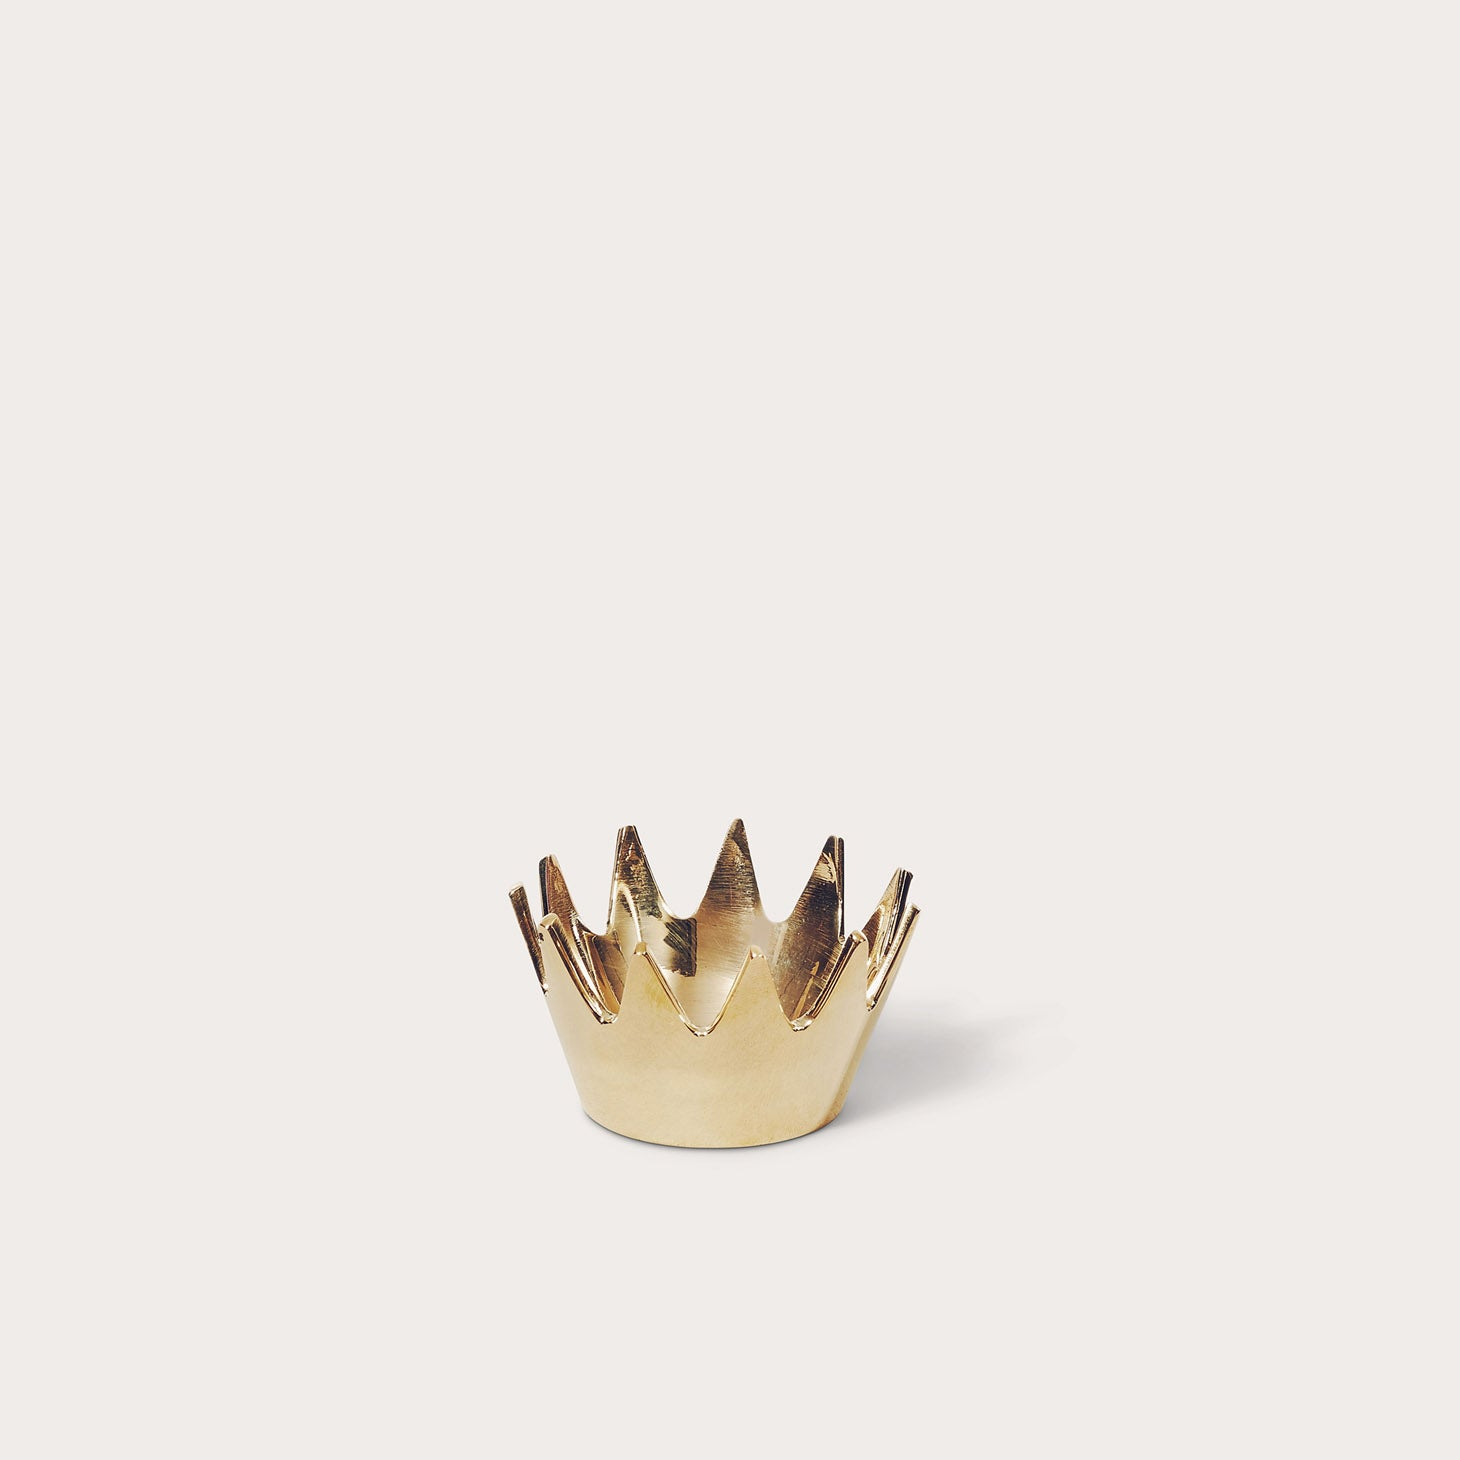 Ashtray Crown Accessories Carl Auböck Designer Furniture Sku: 772-100-10002